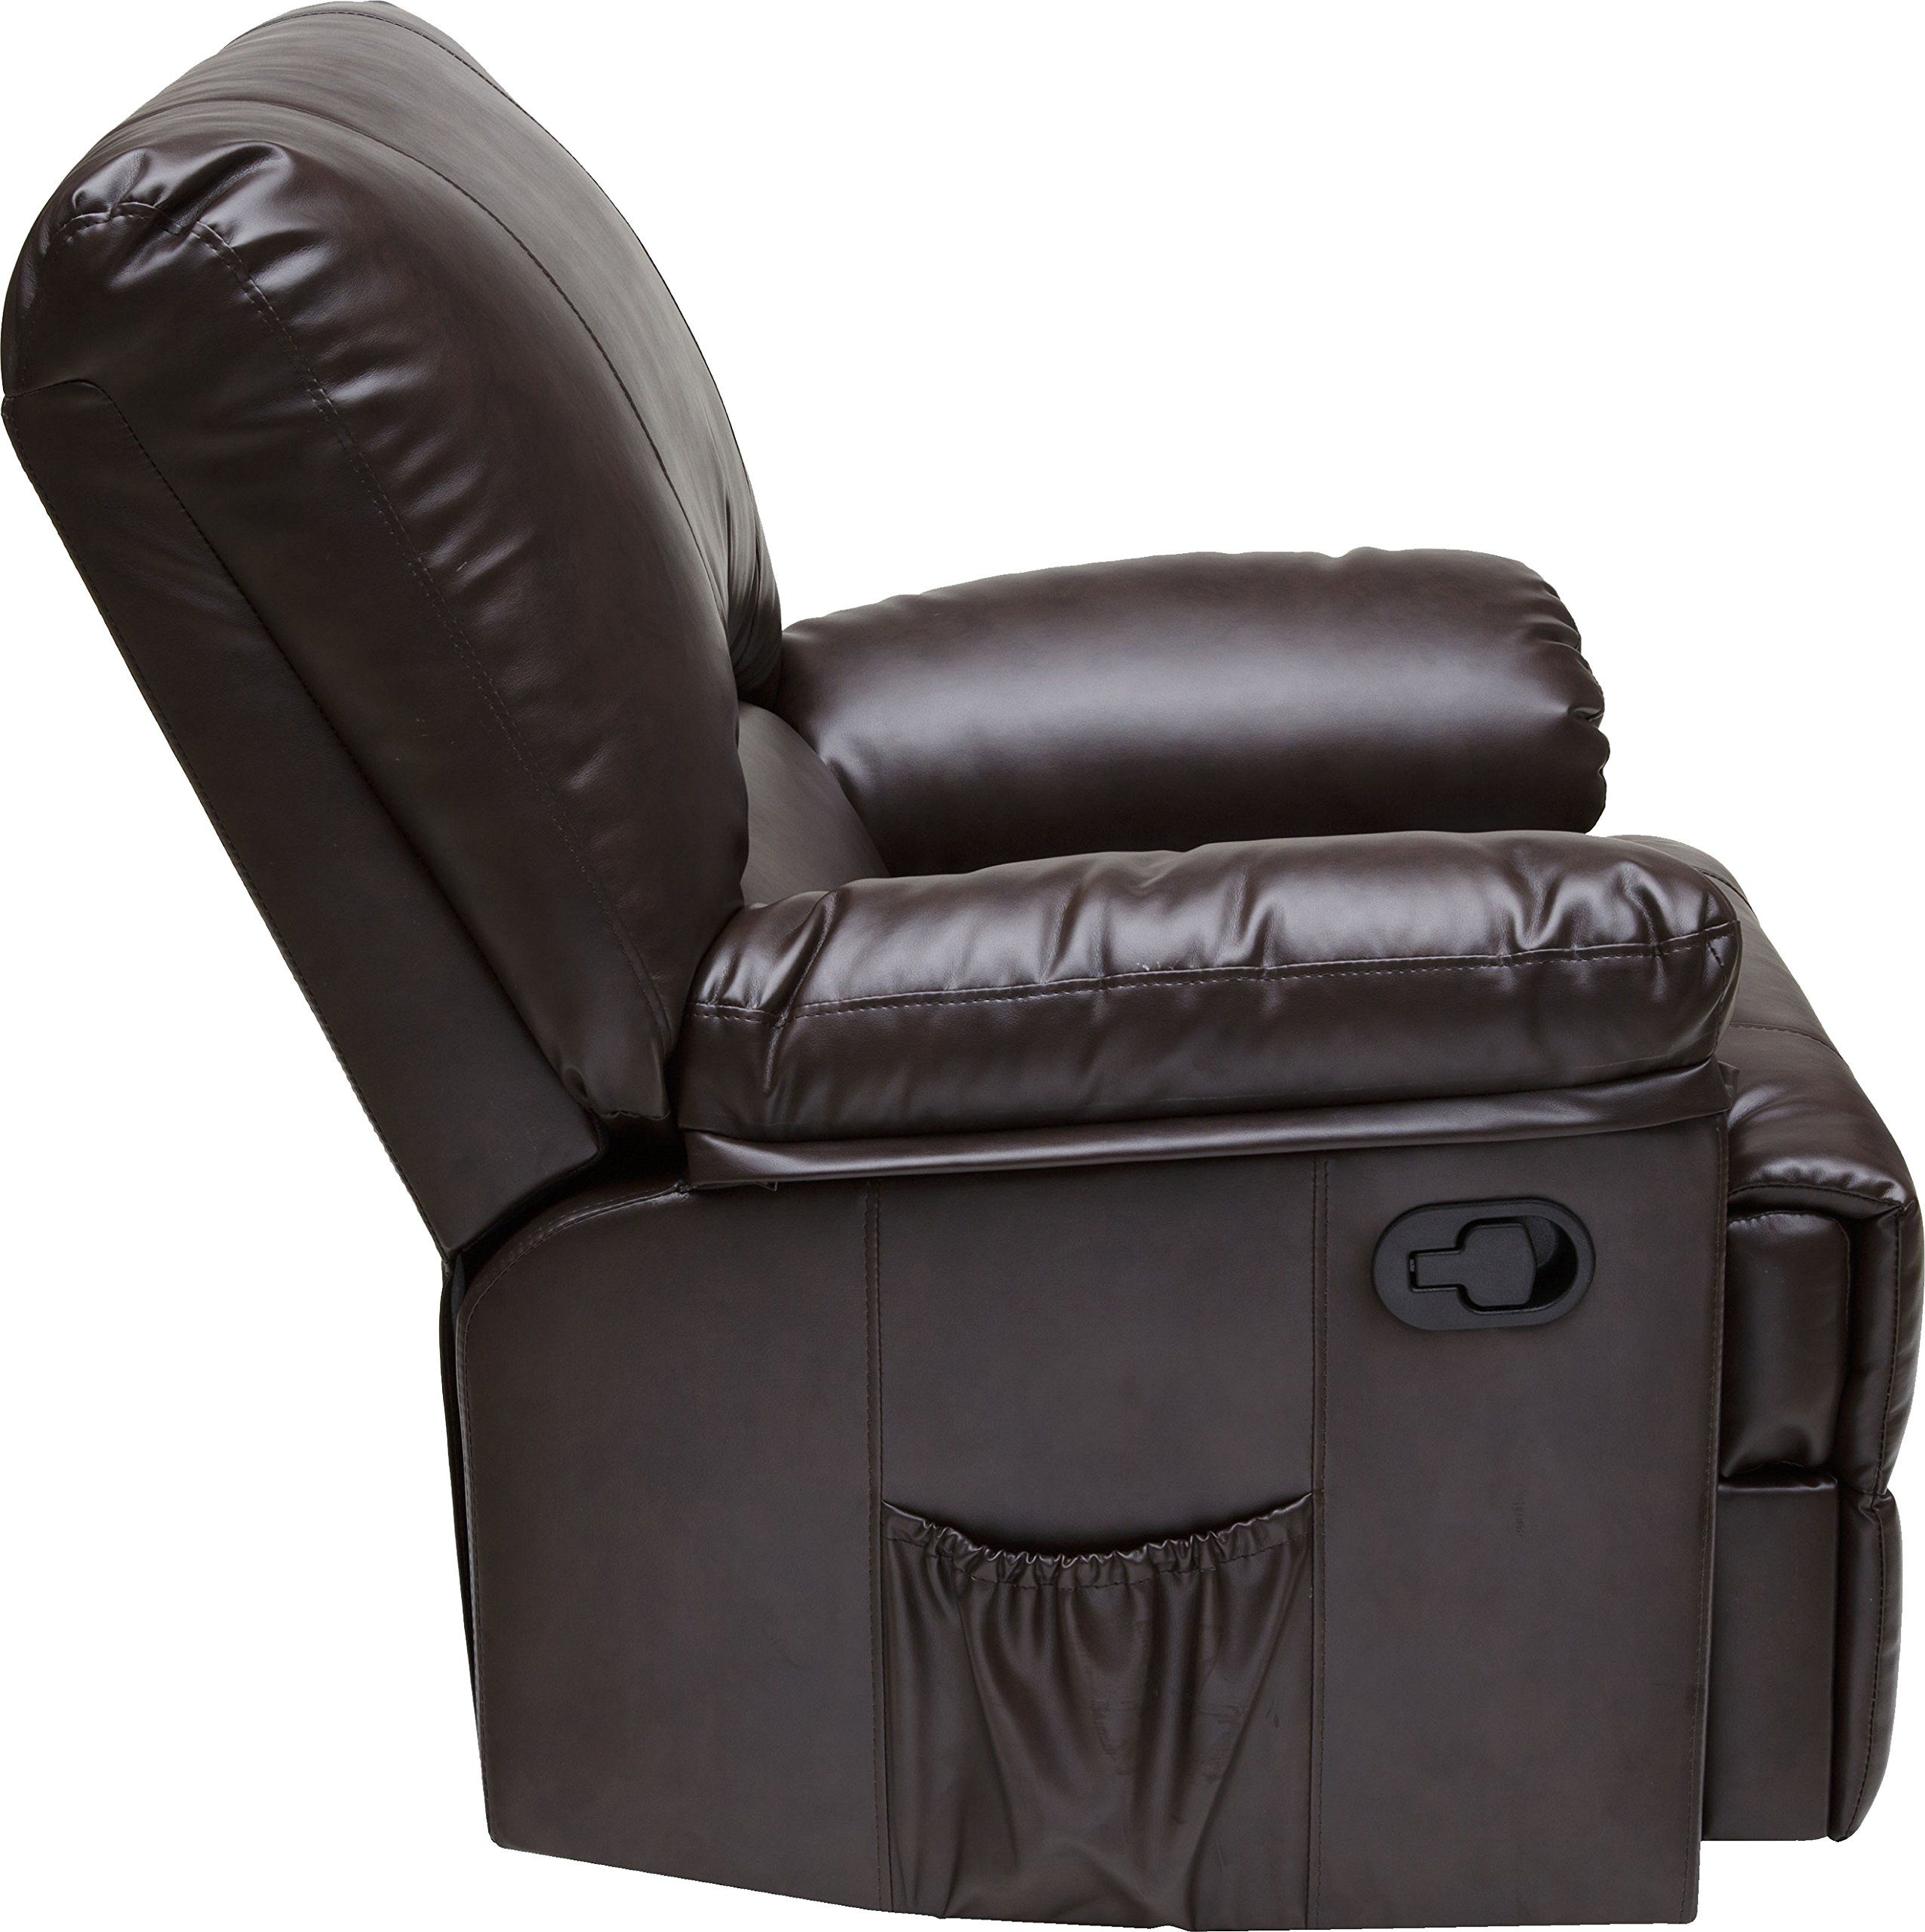 Relaxzen Rocker Recliner With Heat And Massage Brown Marbled